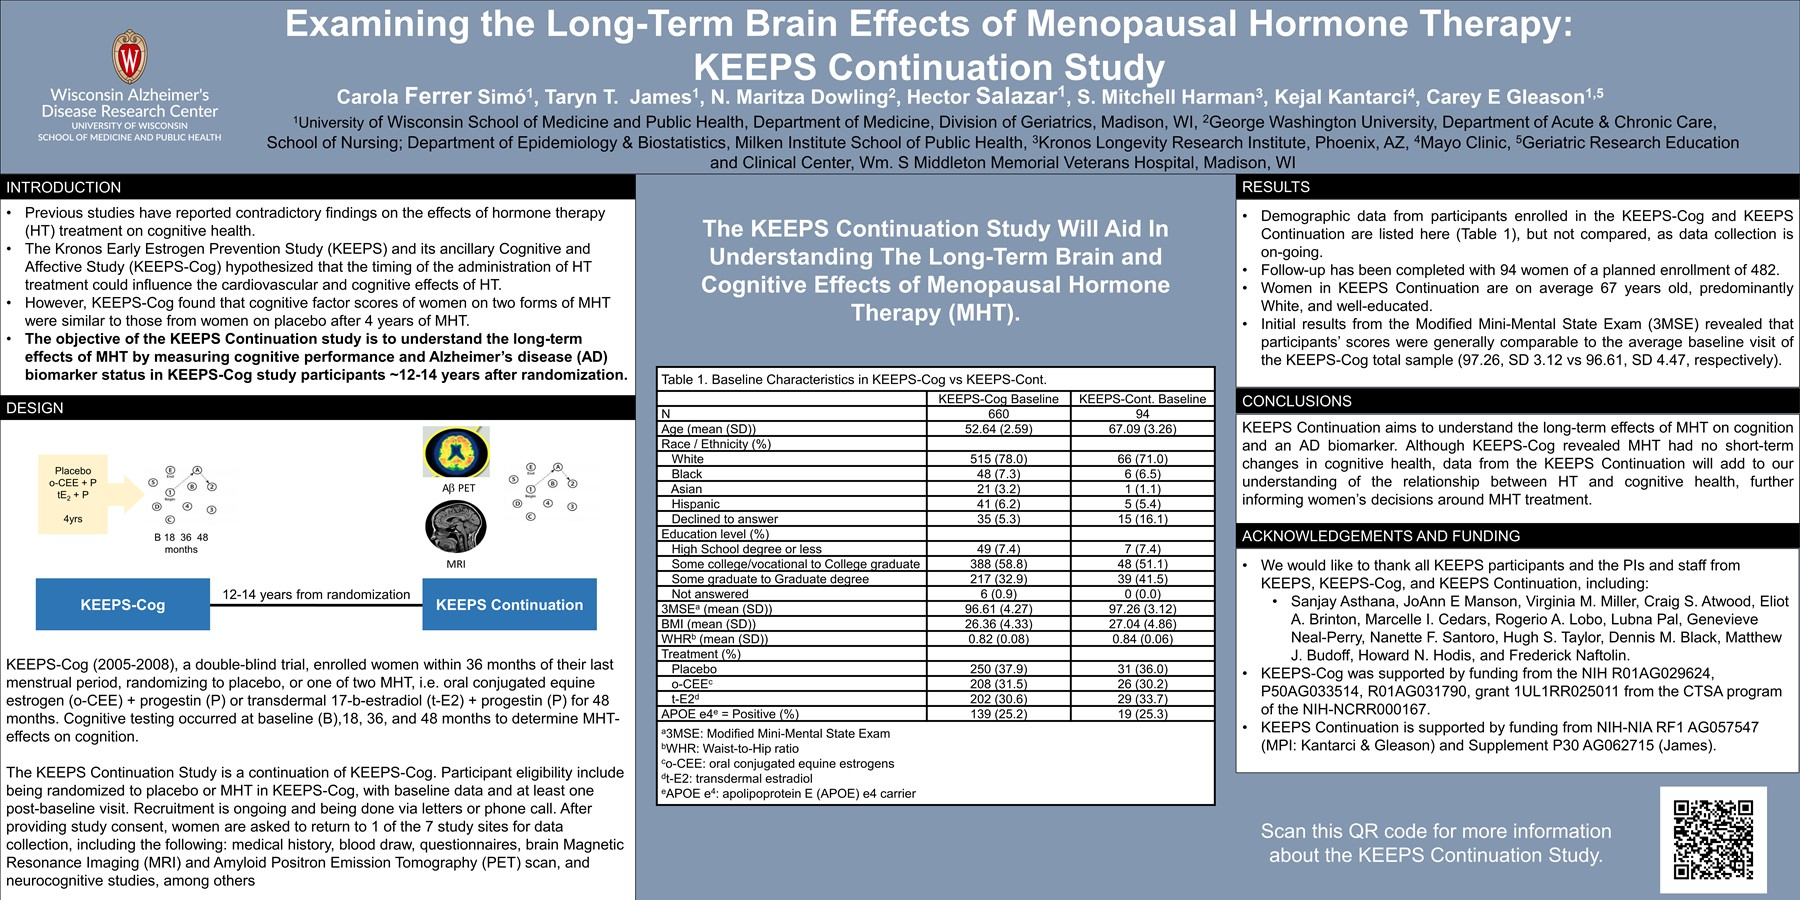 Examining the Long-Term Brain Effects of Menopausal Hormone Therapy: KEEPS Continuation Study